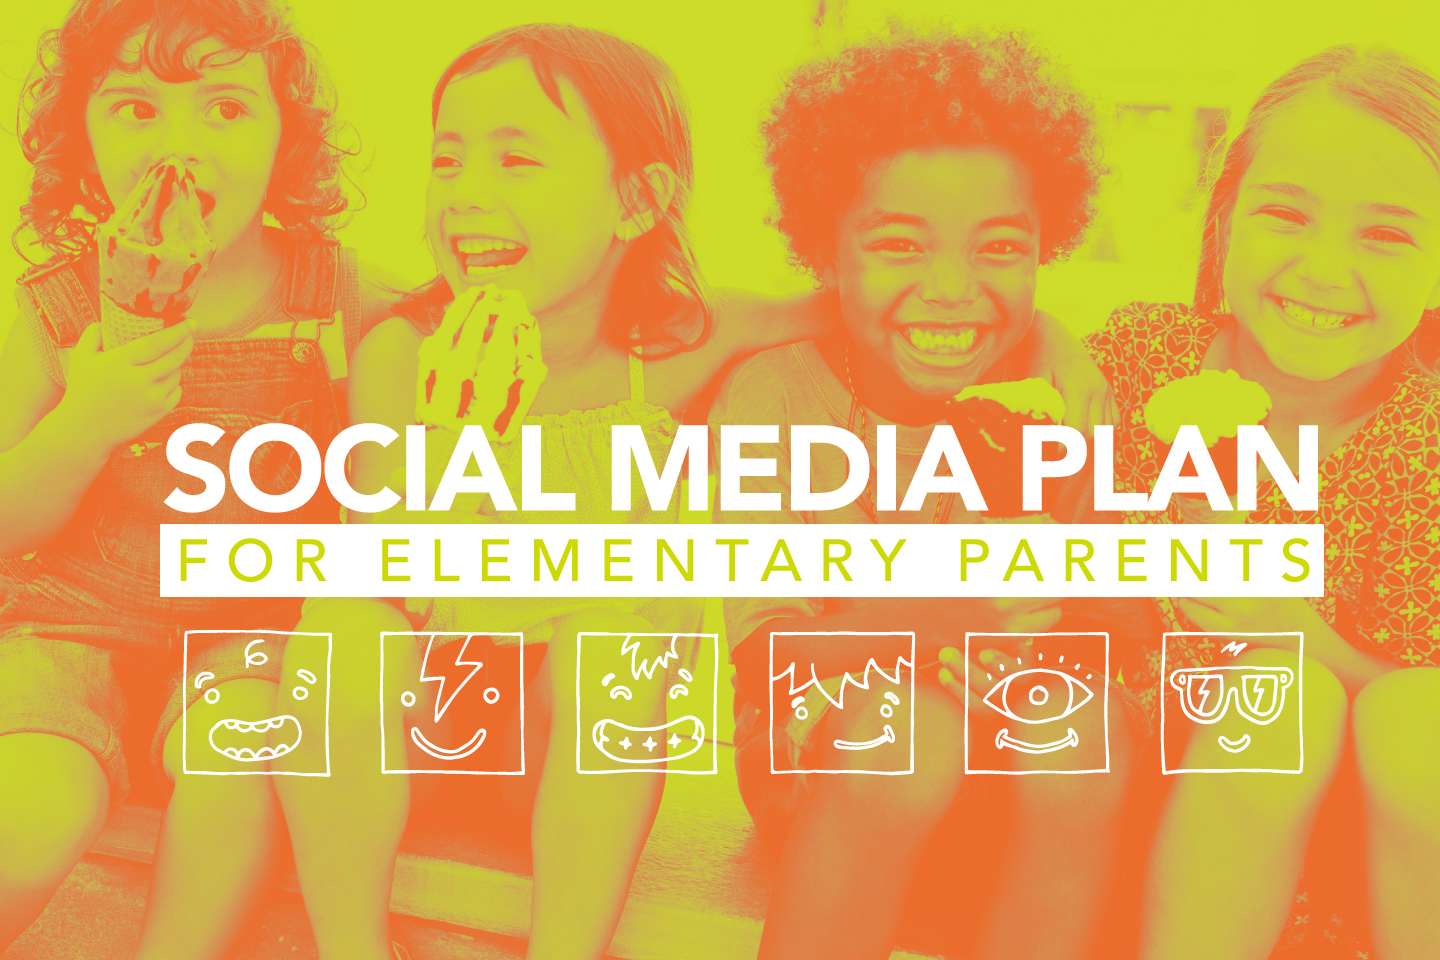 Social Media Plan for Parents of Elementary Kids - 252 Kids - Orange Kids